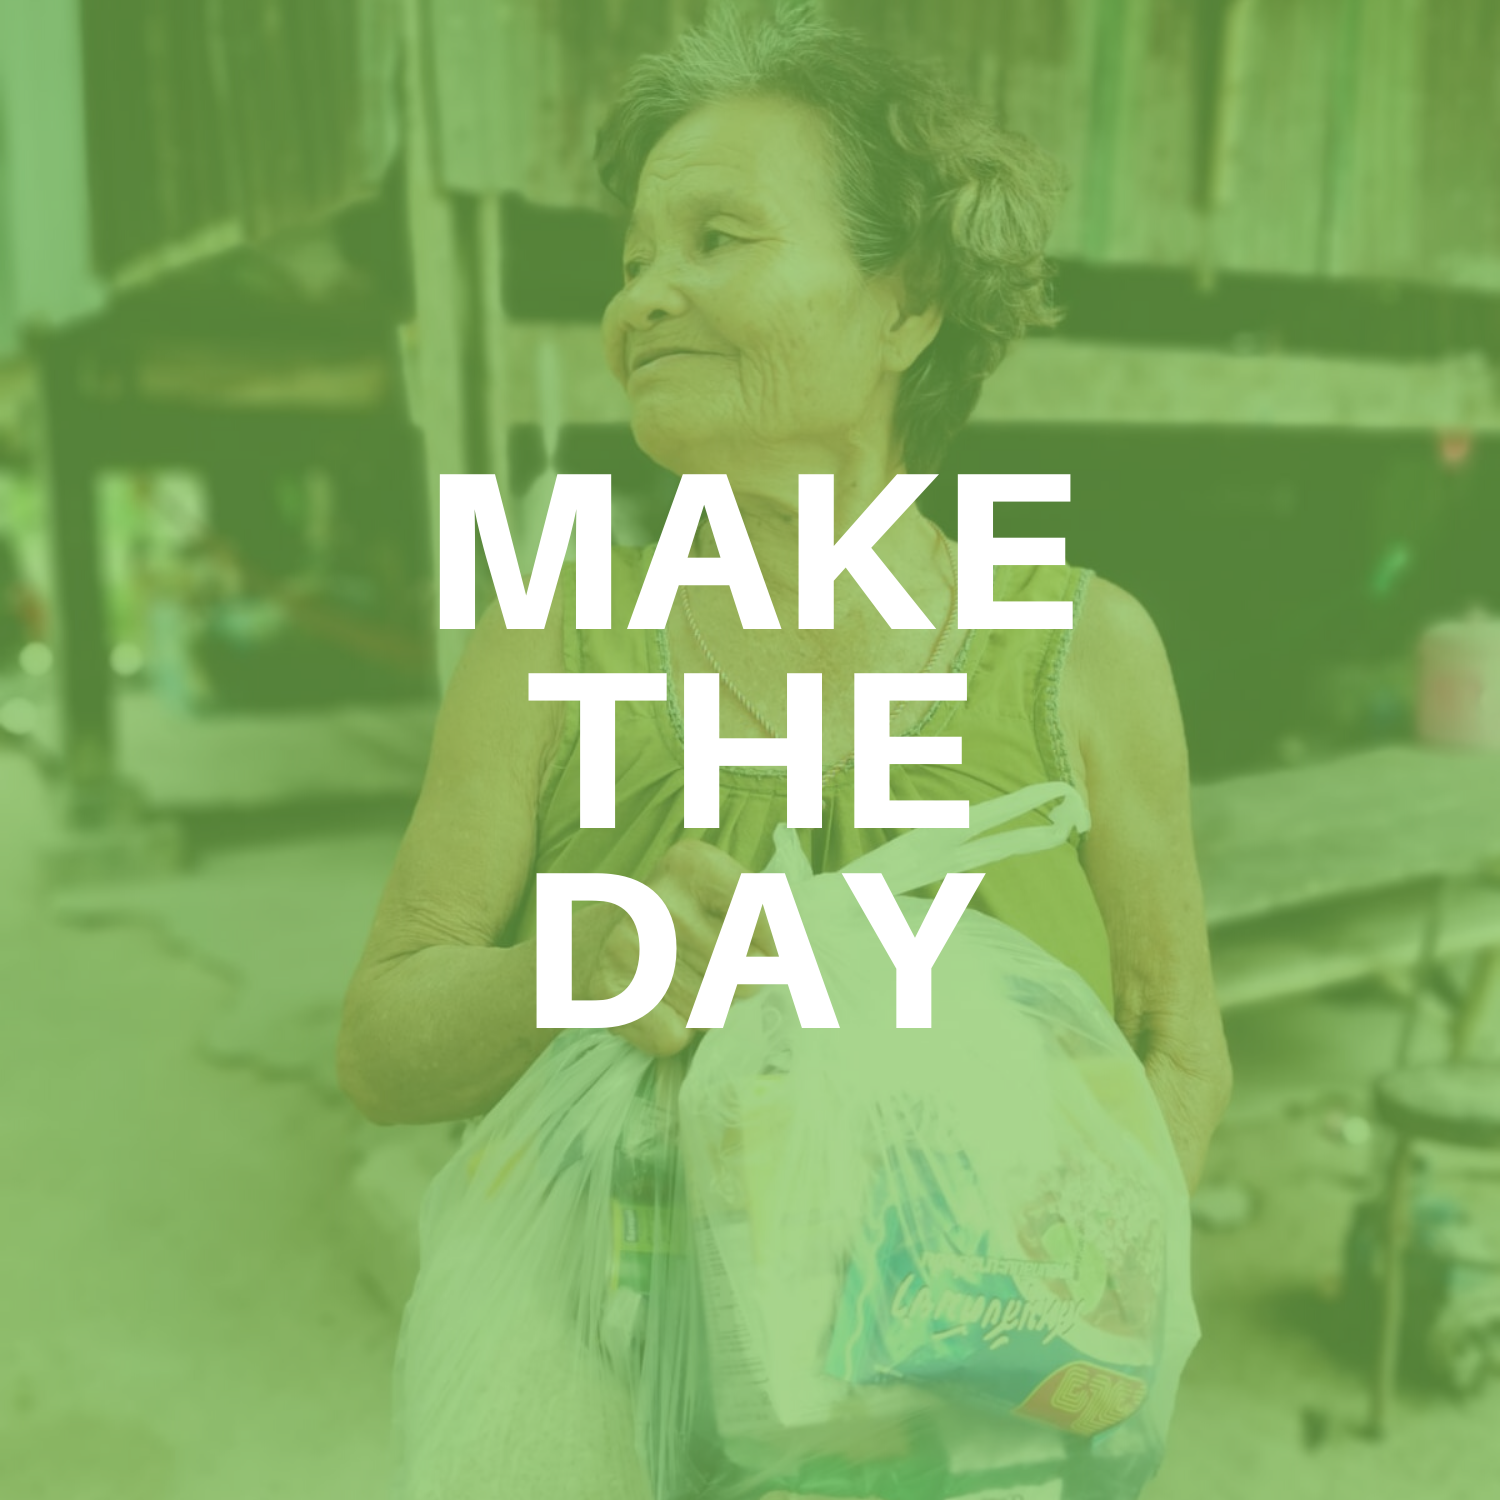 SUPPORT INDIVIDUALS BY MEALS FOR A DAY